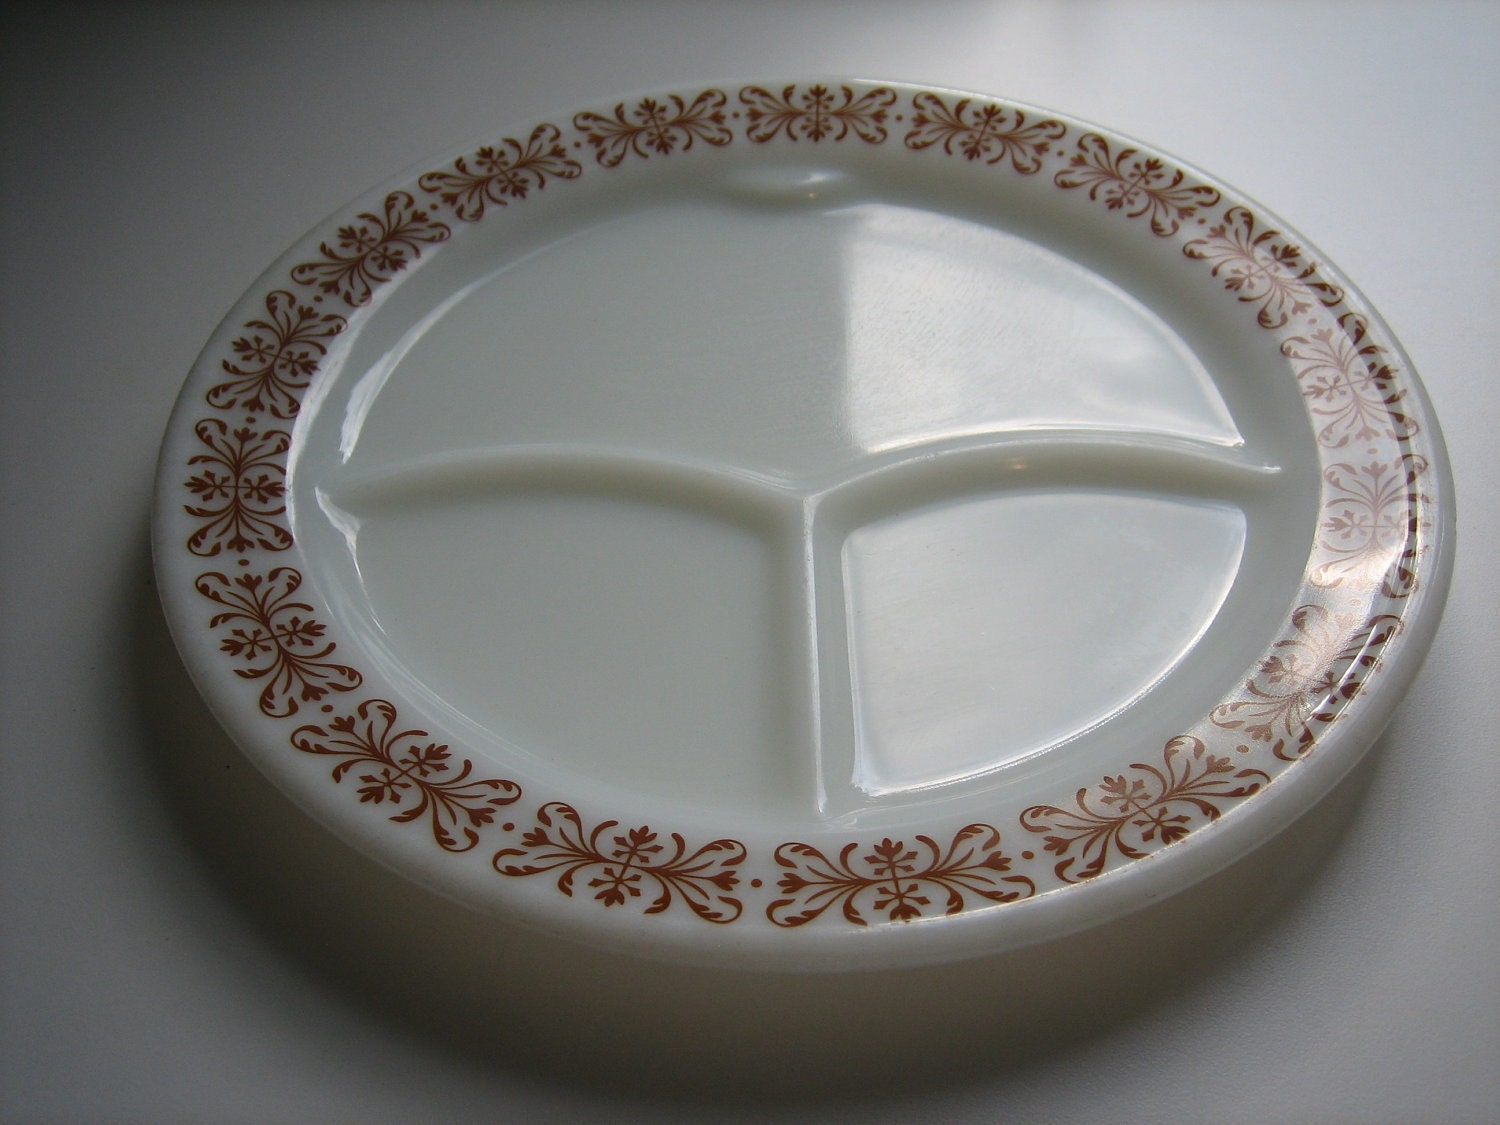 Vintage Pyrex-Corning divided plates set of 2 Brown boarder